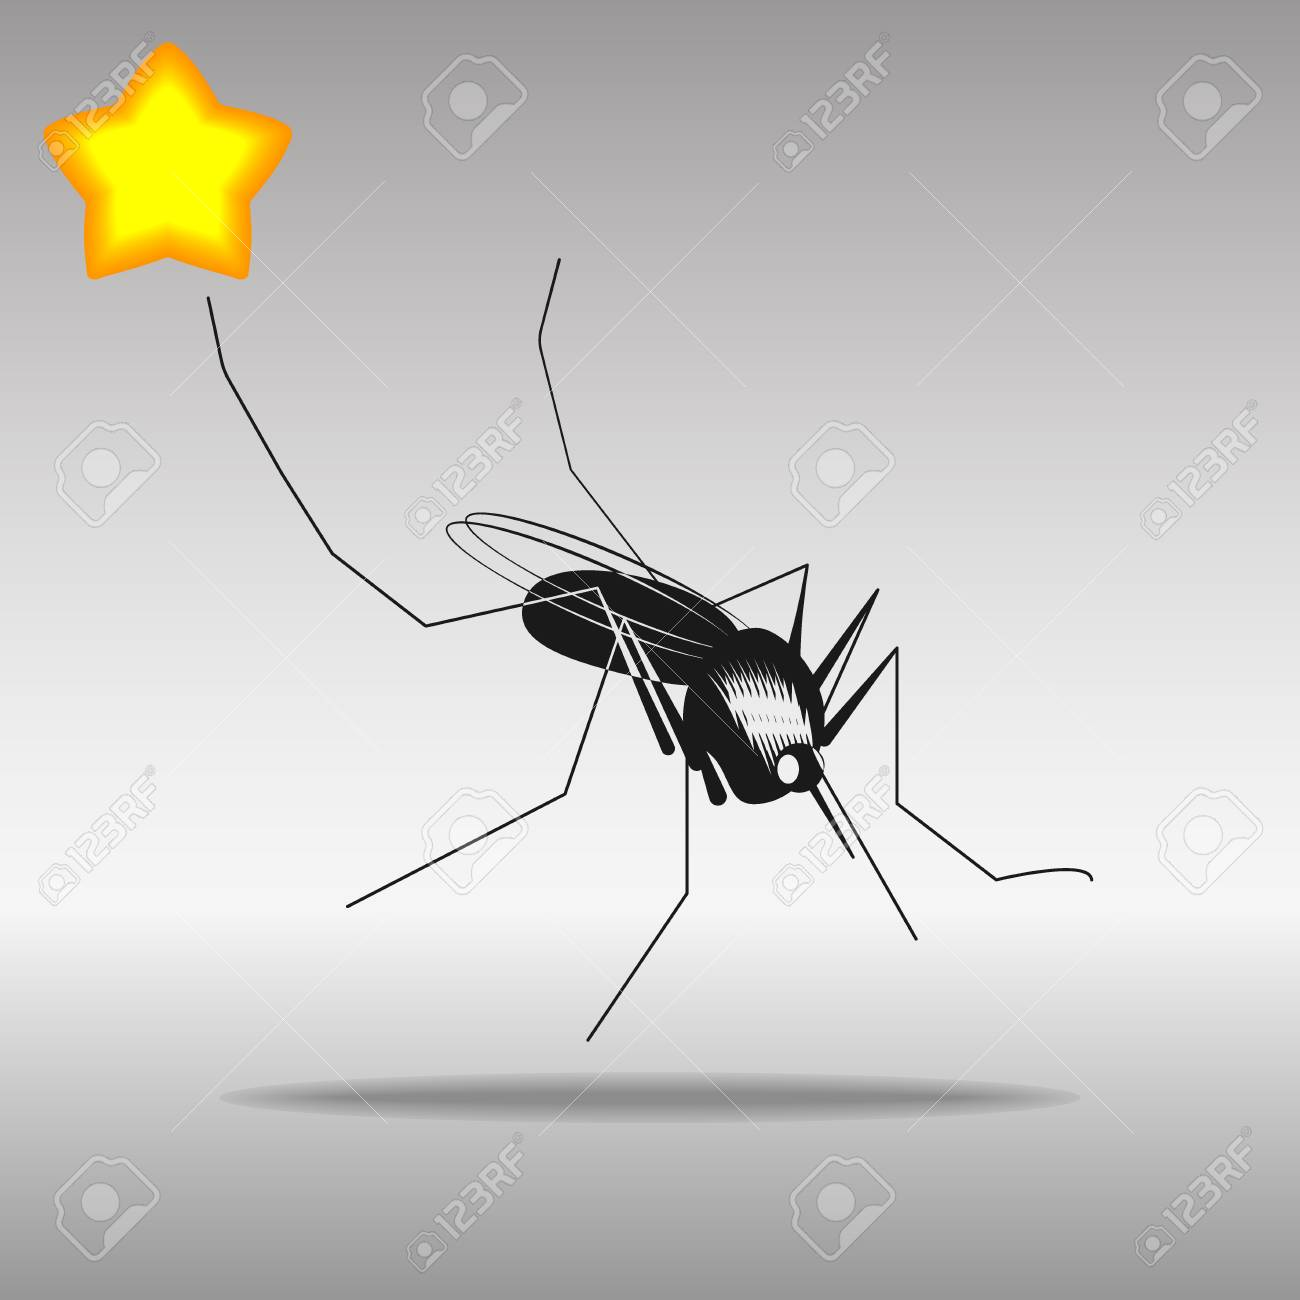 mosquito black Icon button logo symbol concept high quality on the gray background - 82176385